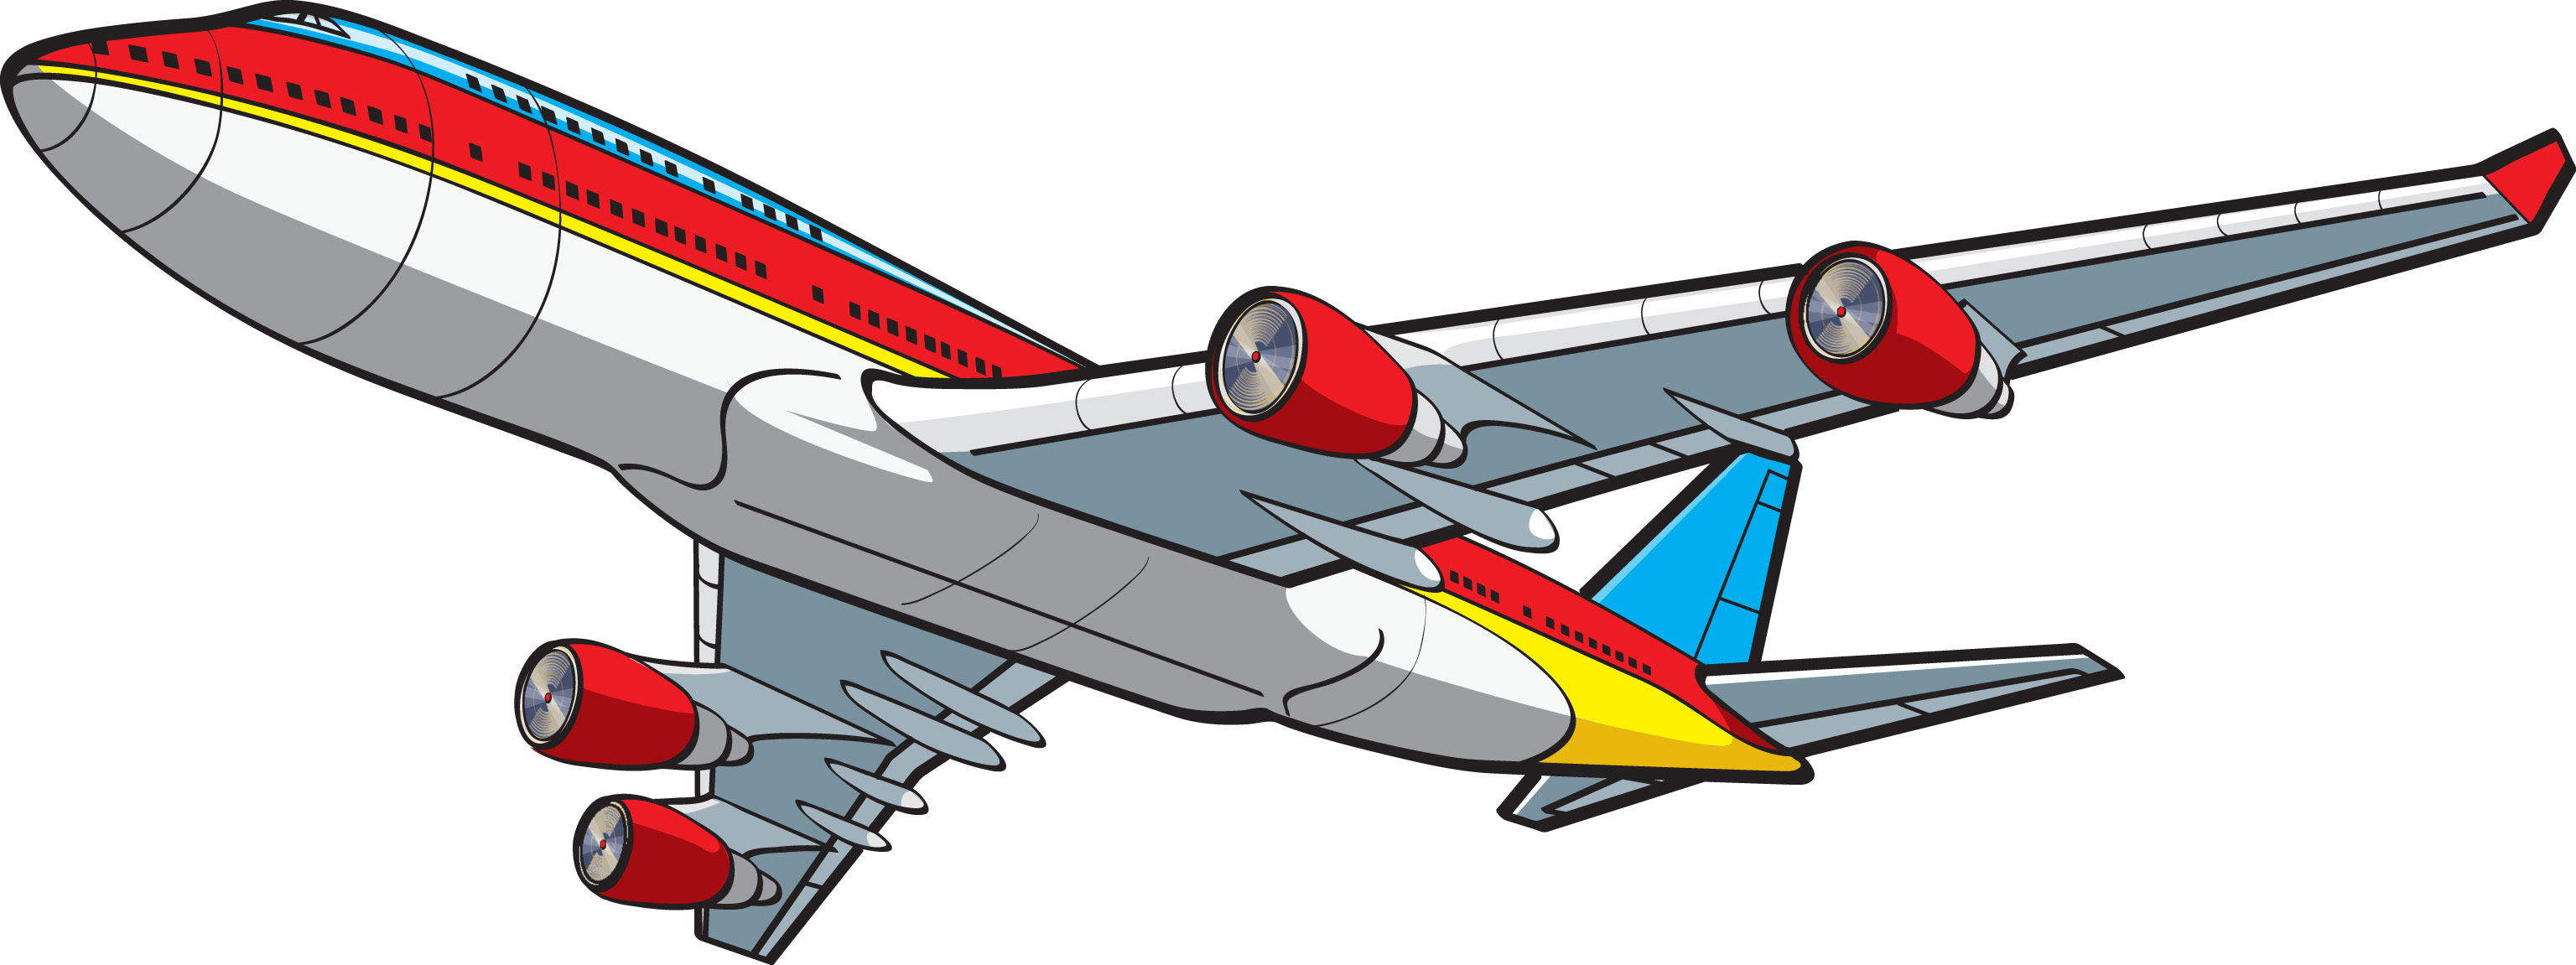 3072x1151 Aviation Clipart Cartoon